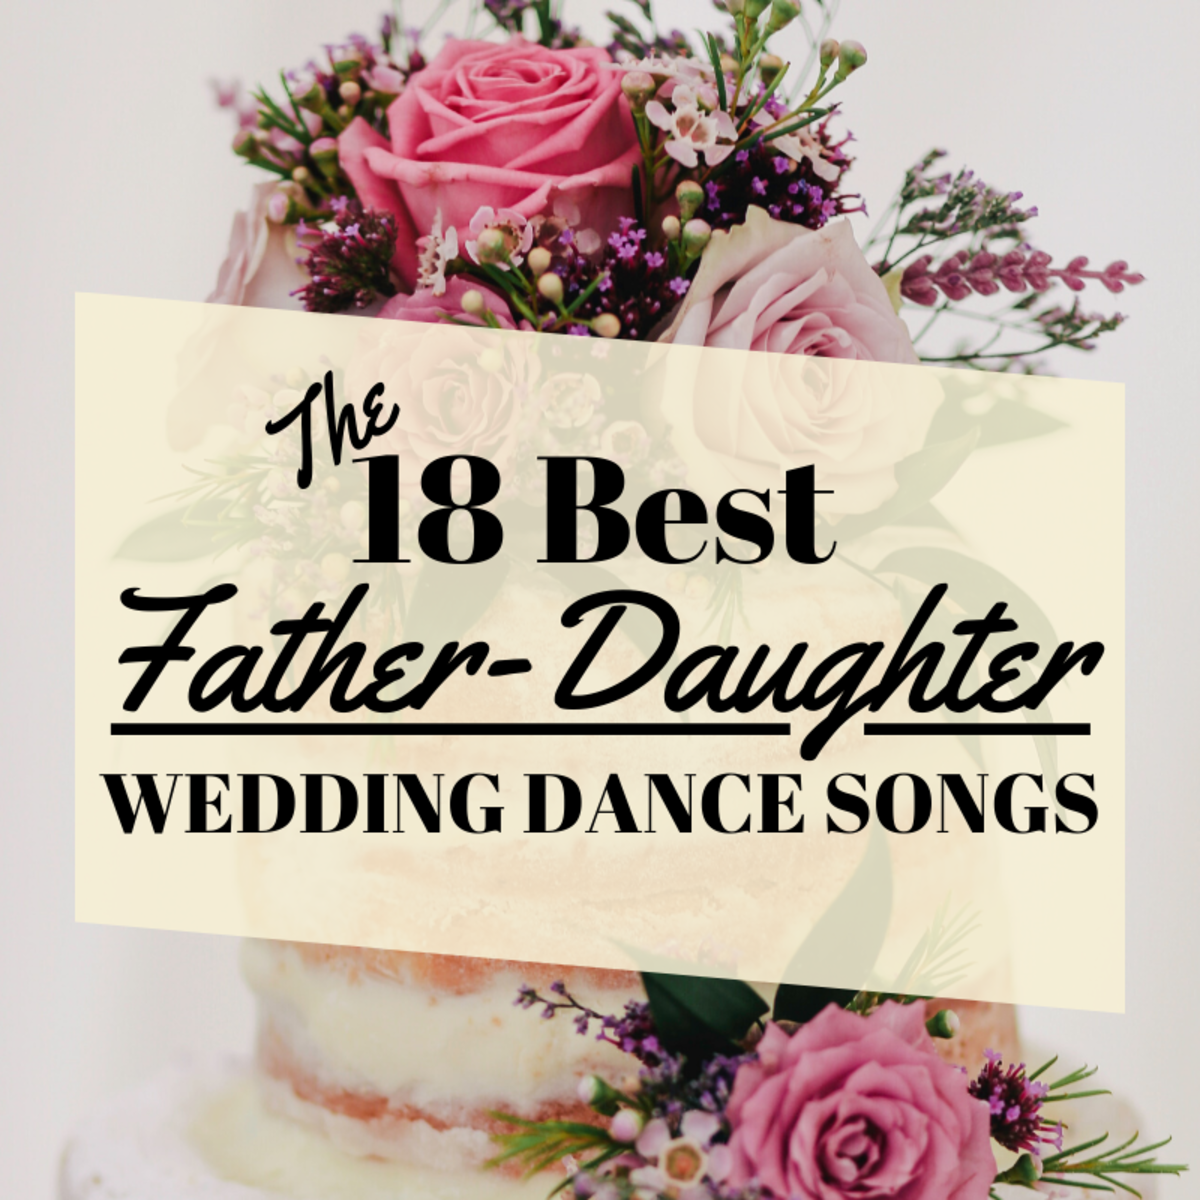 A daughter's marriage is a memorable time for both her and her father. Find the perfect father-daughter wedding dance song here.